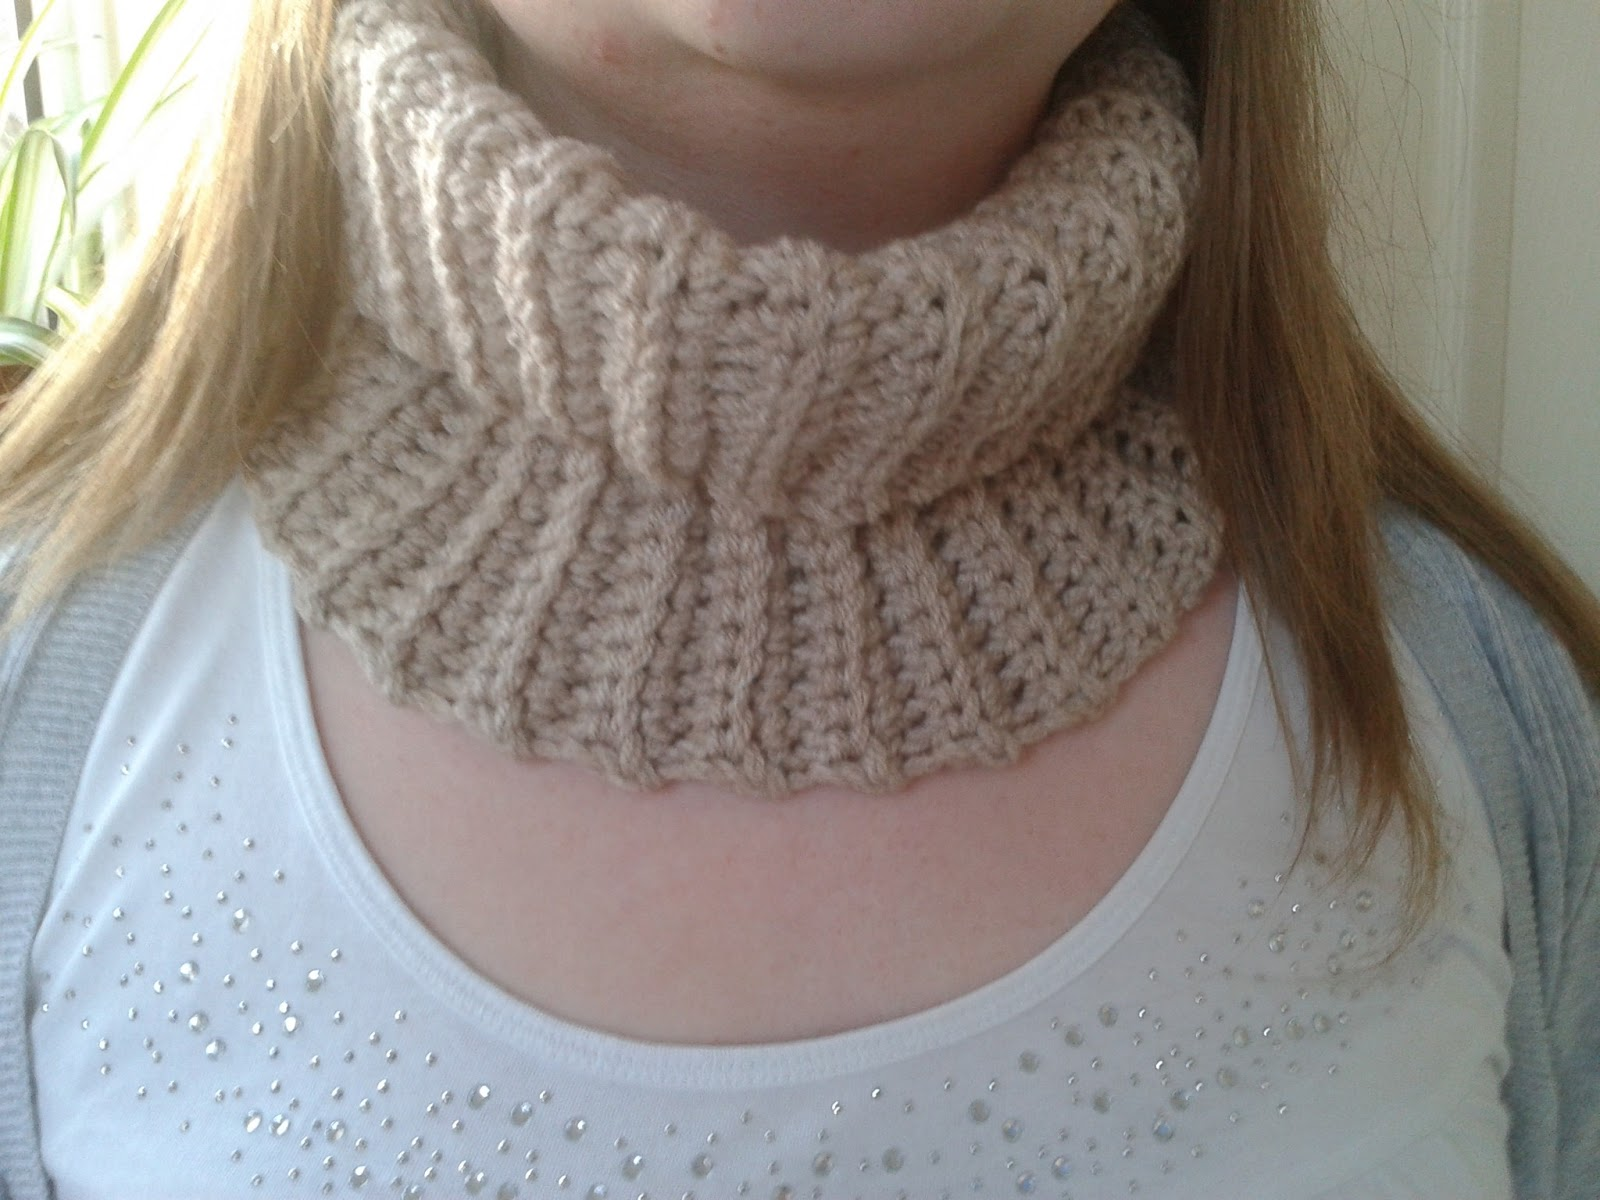 Crochet Patterns Neck Warmers : Its lovely and comfy to wear and it certainly keeps you warm!